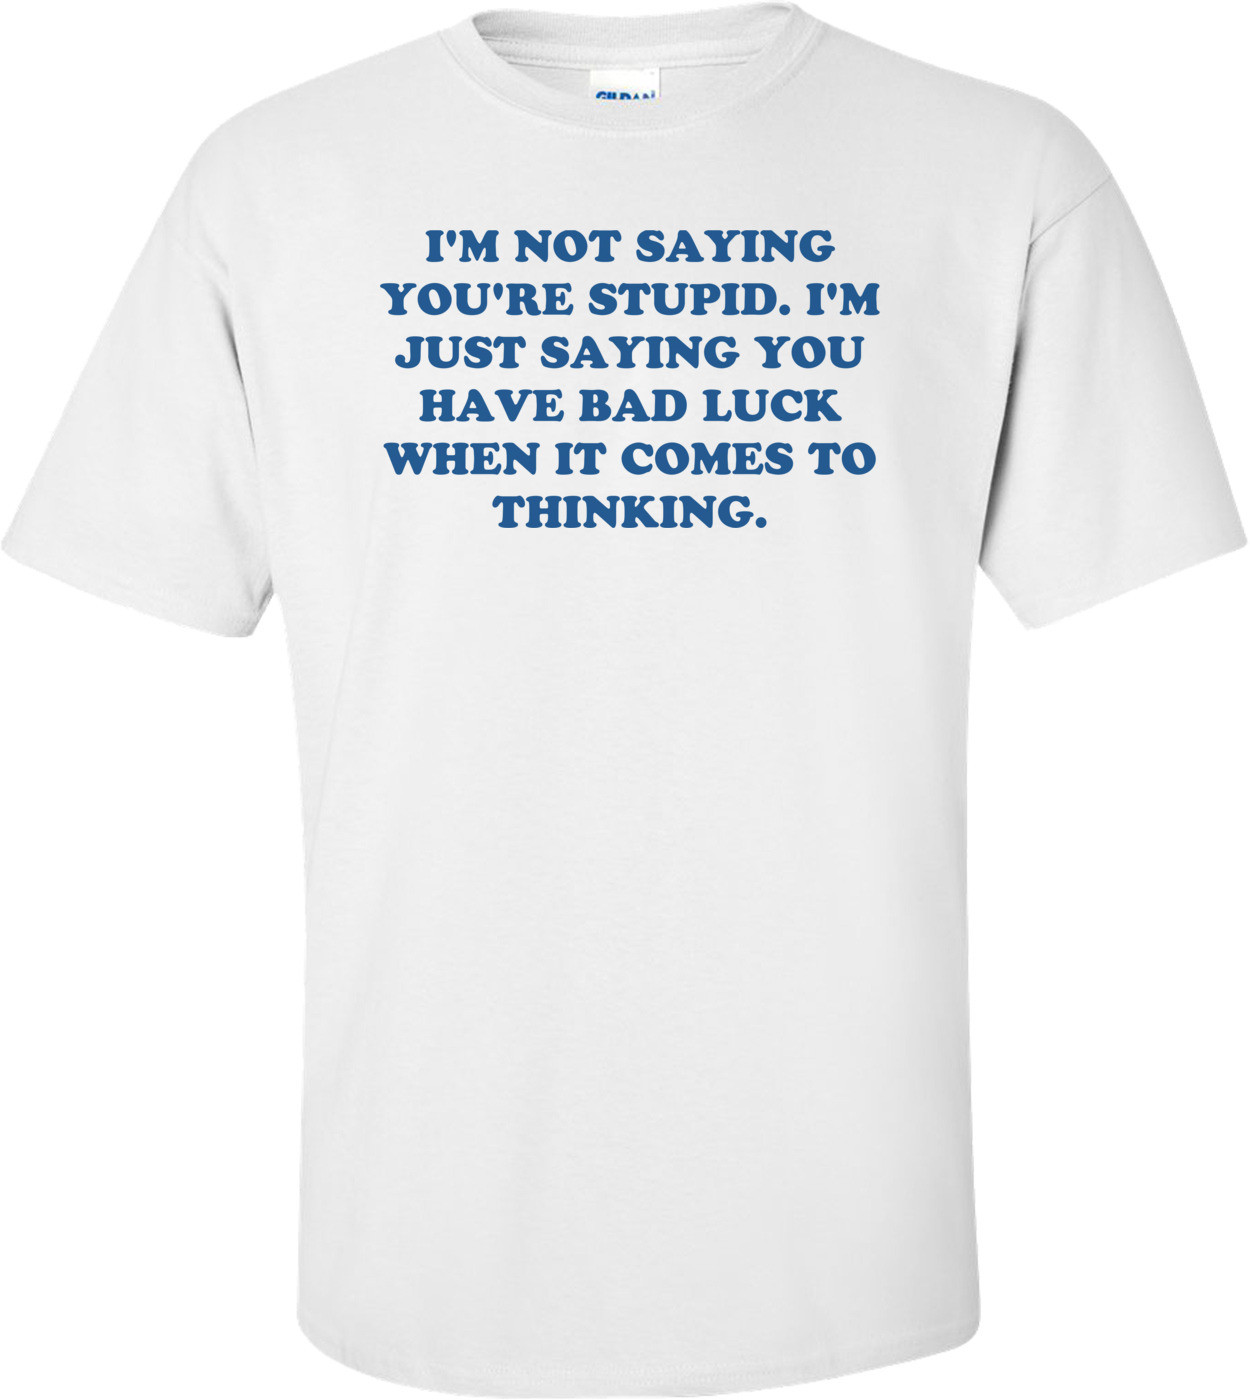 I'M NOT SAYING YOU'RE STUPID. I'M JUST SAYING YOU HAVE BAD LUCK WHEN IT COMES TO THINKING. Shirt